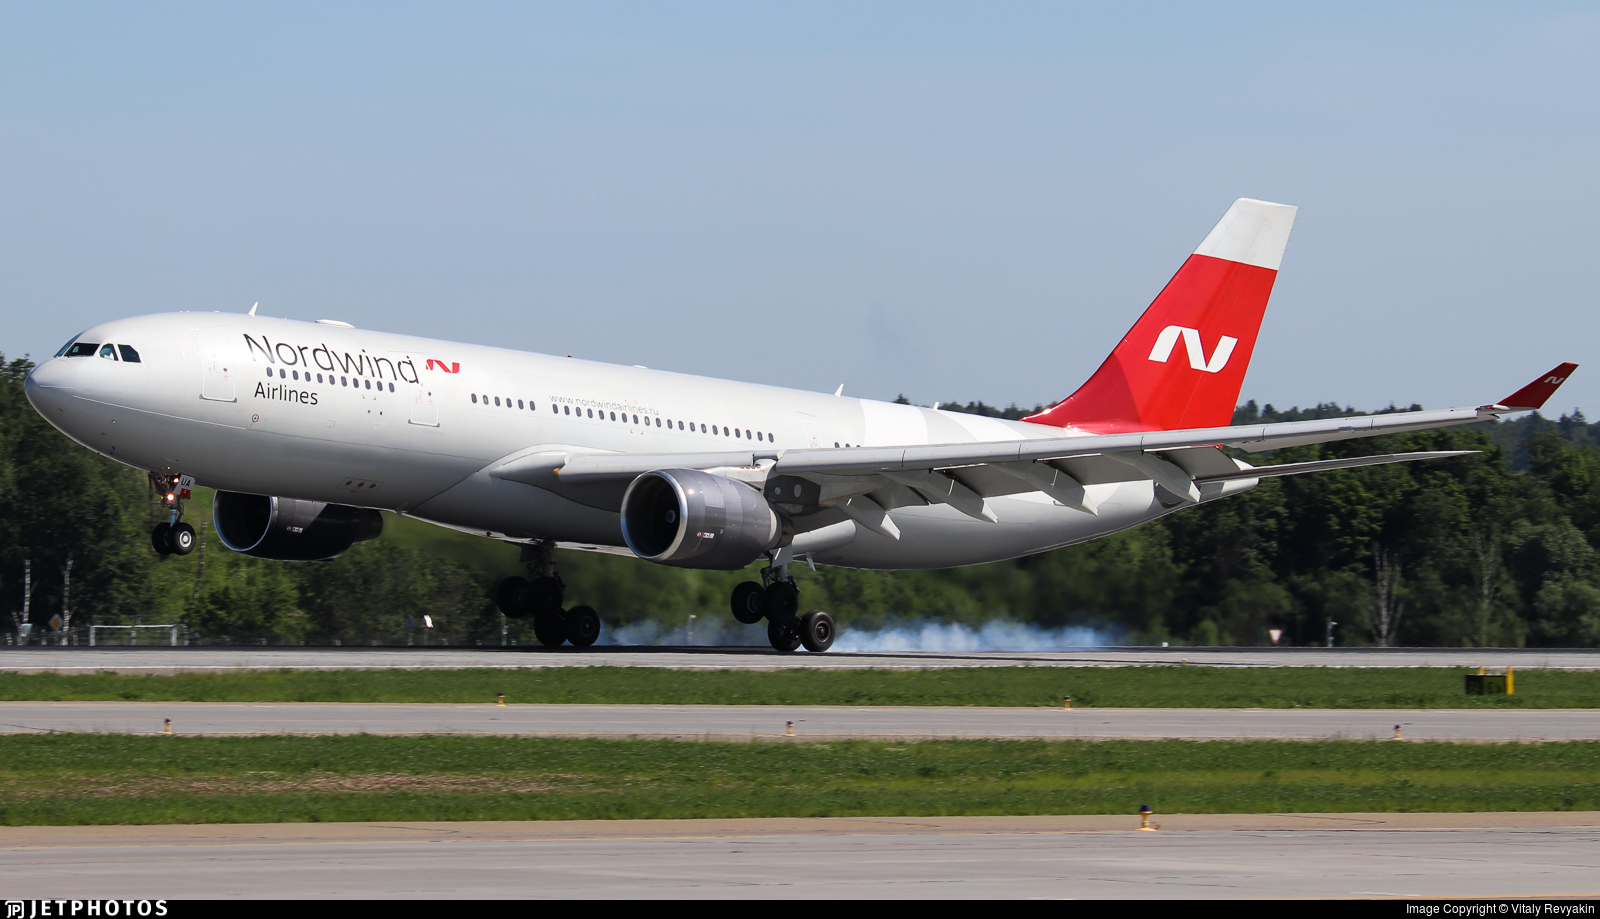 VP-BUA - Airbus A330-223 - Nordwind Airlines